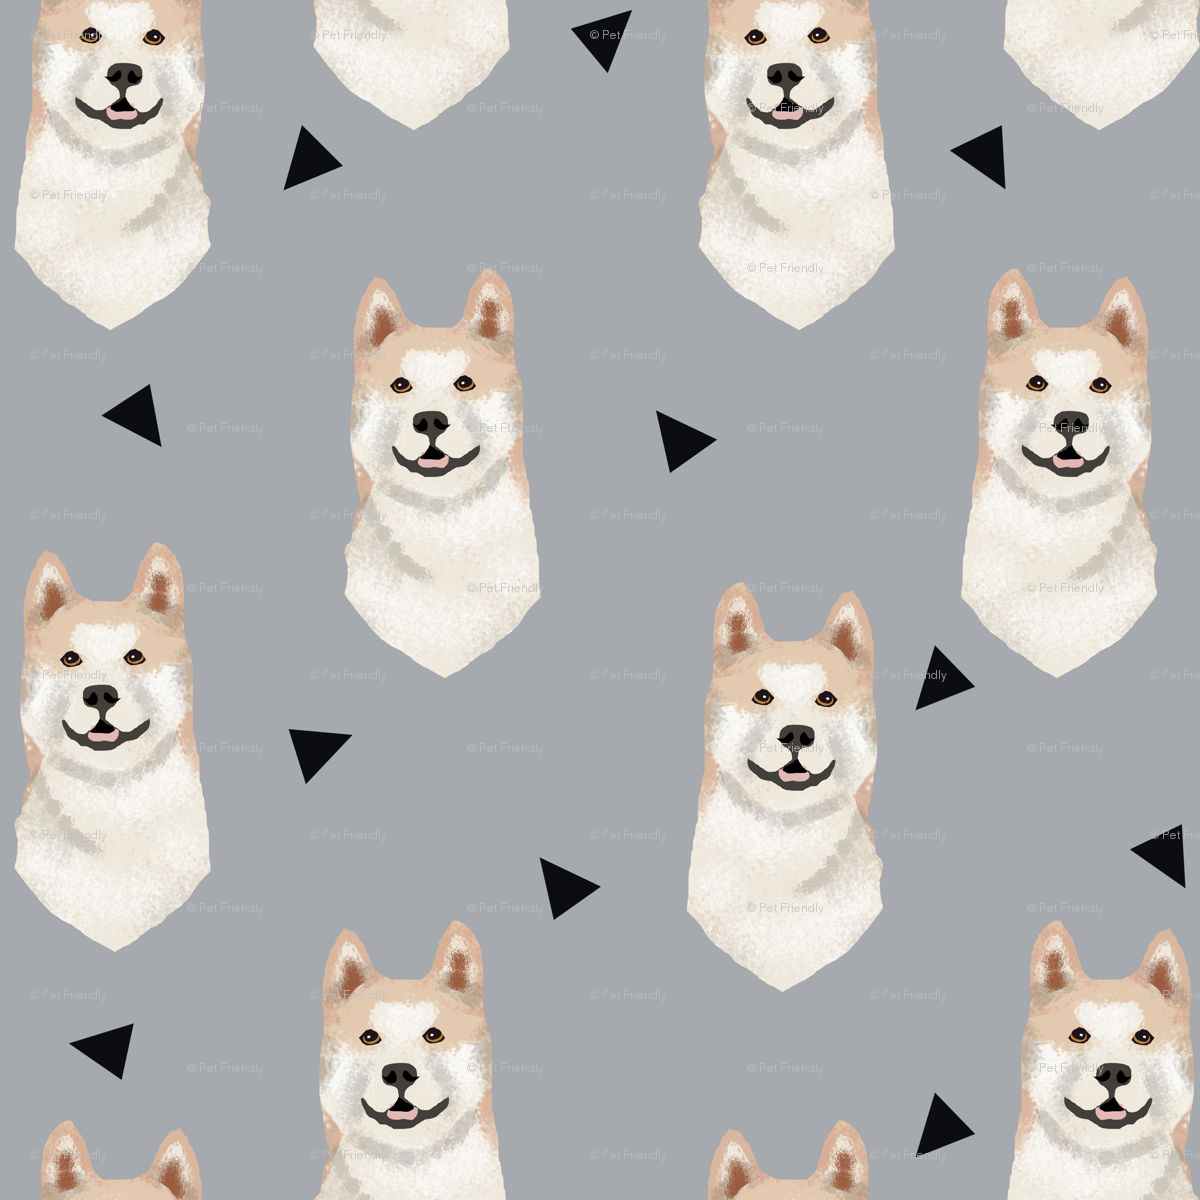 a1e95070f akita geometric fabric dogs and triangles design wallpaper - petfriendly -  Spoonflower